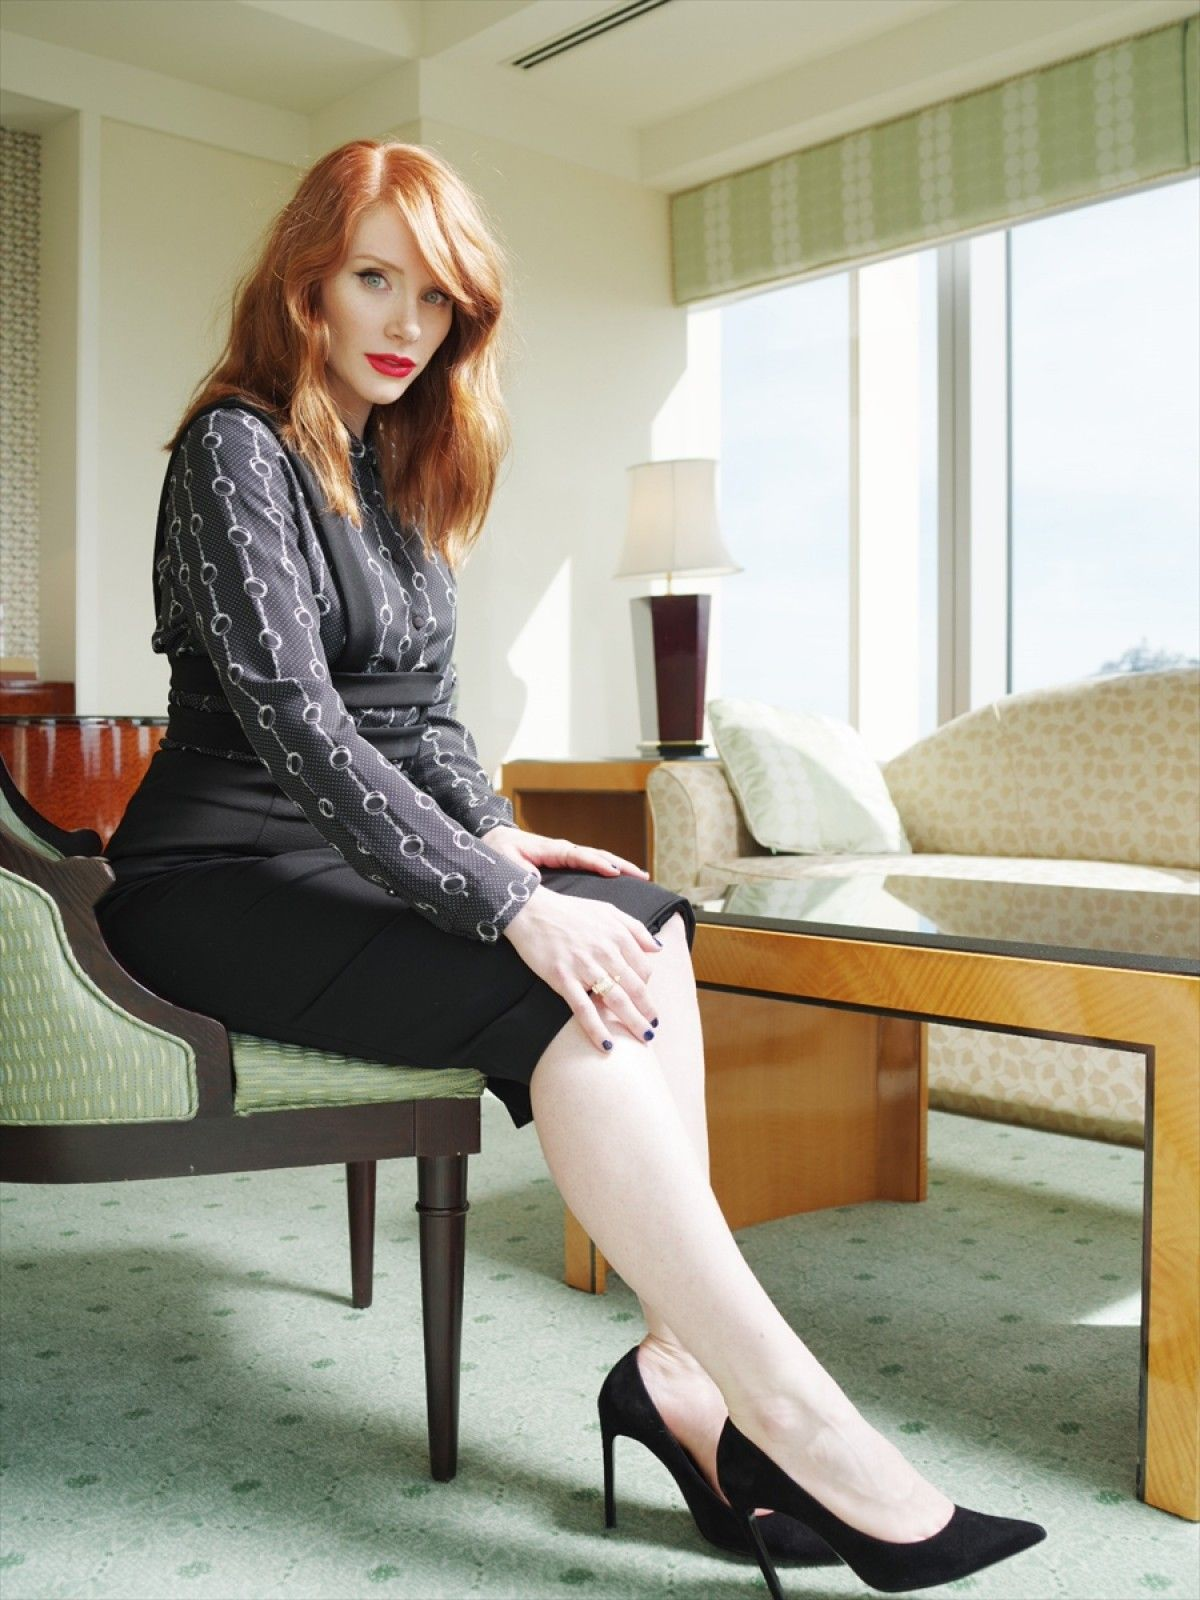 Bryce Dallas Howard (With images) | Dallas howard, Bryce